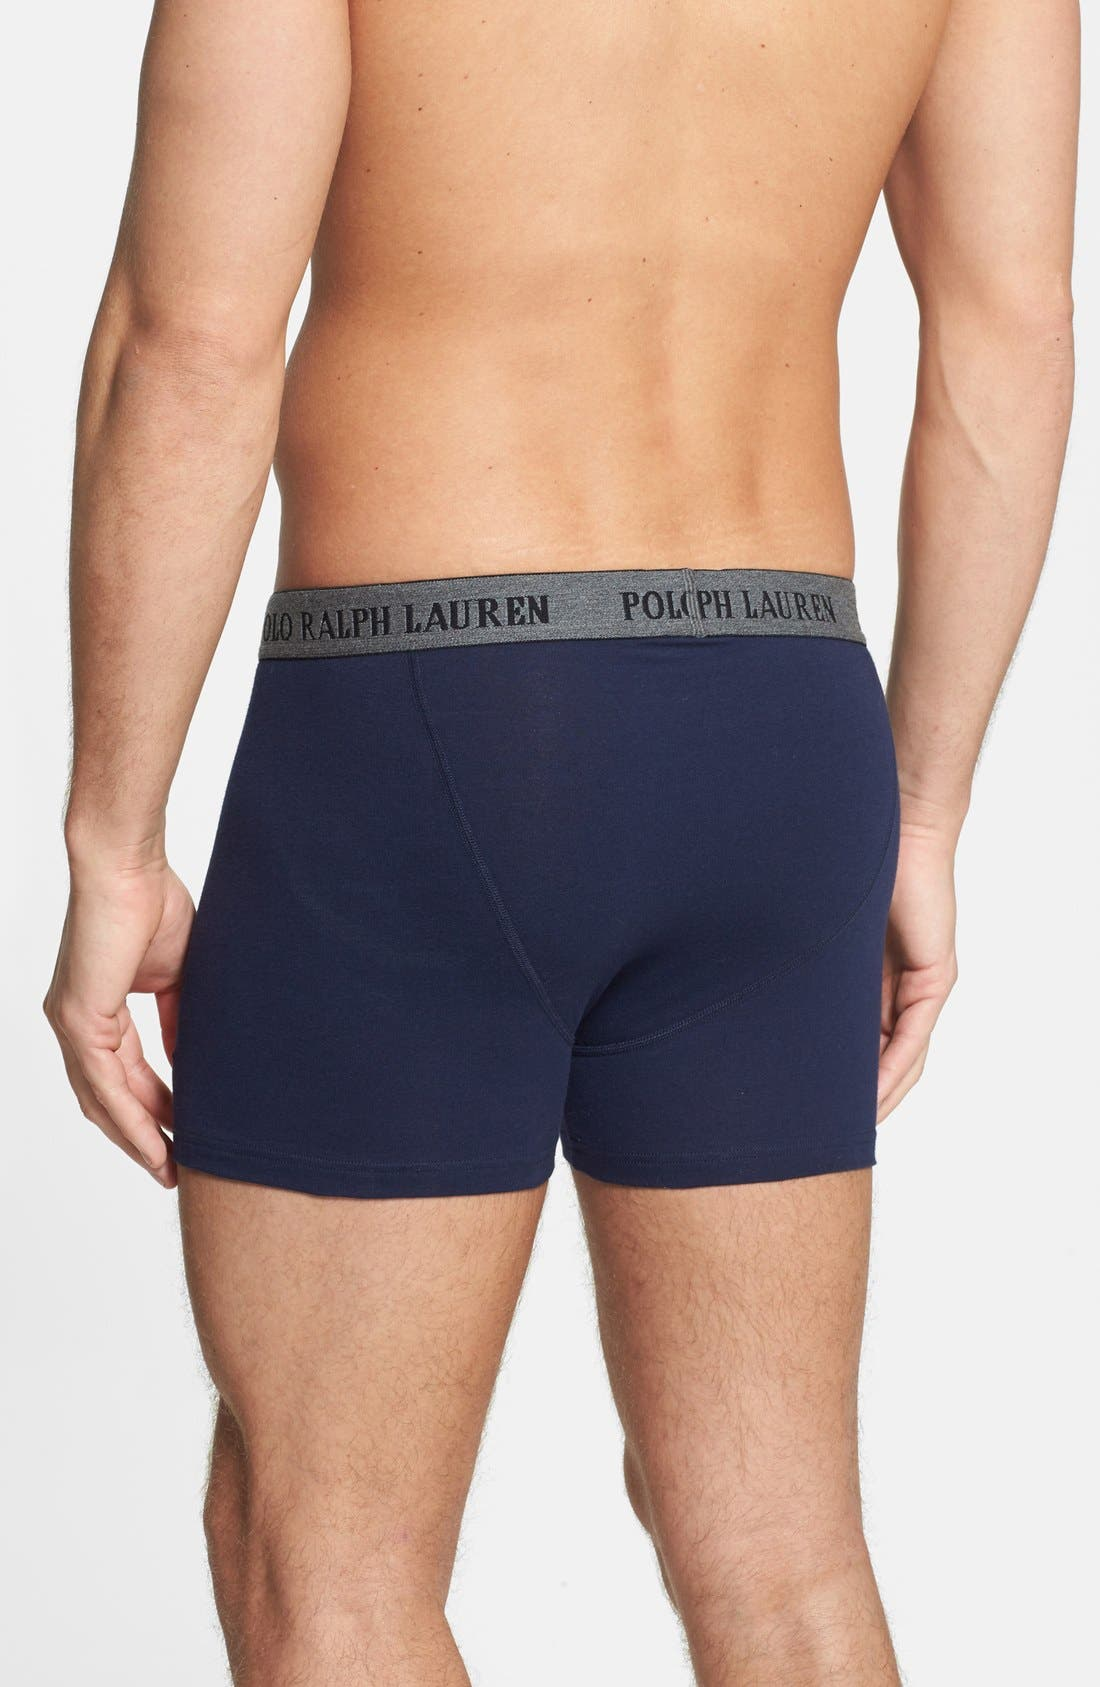 Alternate Image 2  - Polo Ralph Lauren Boxer Briefs (2 for $36.50)